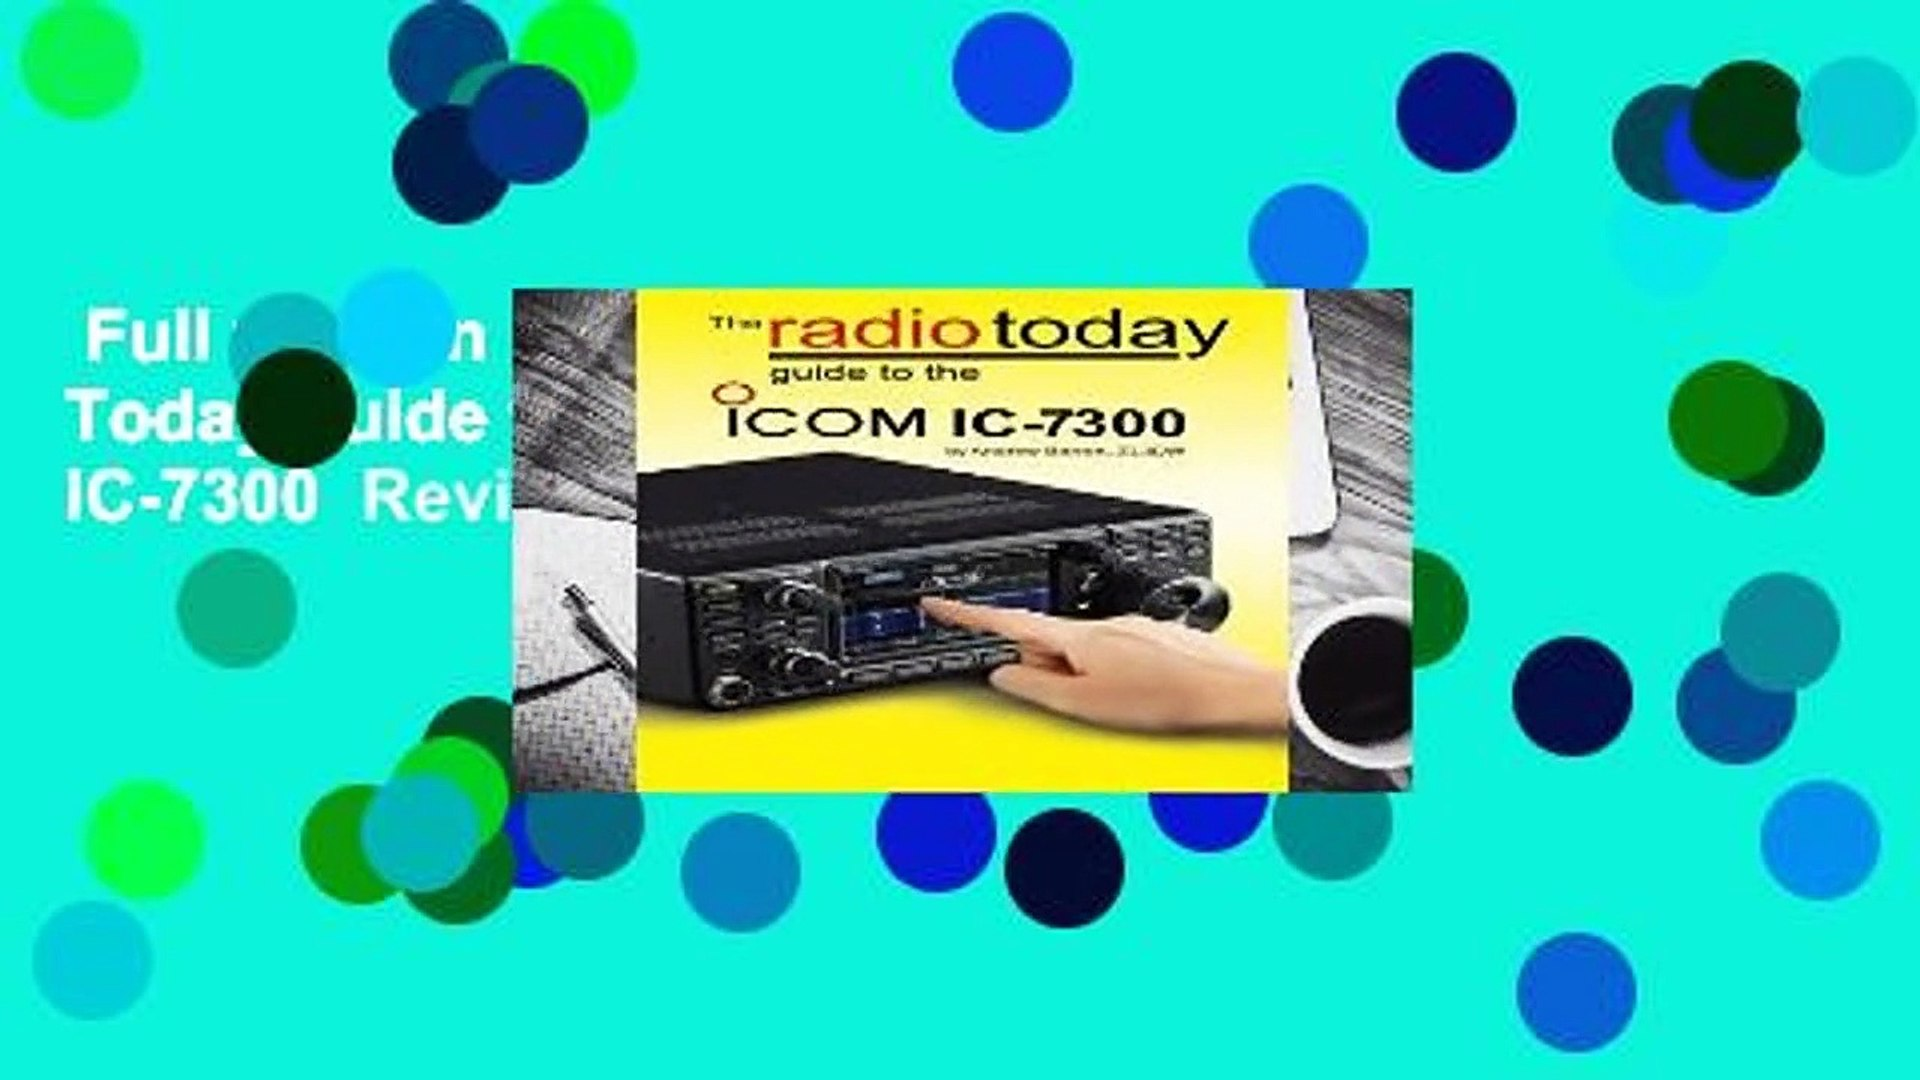 Full version The Radio Today guide to the Icom IC-7300 Review